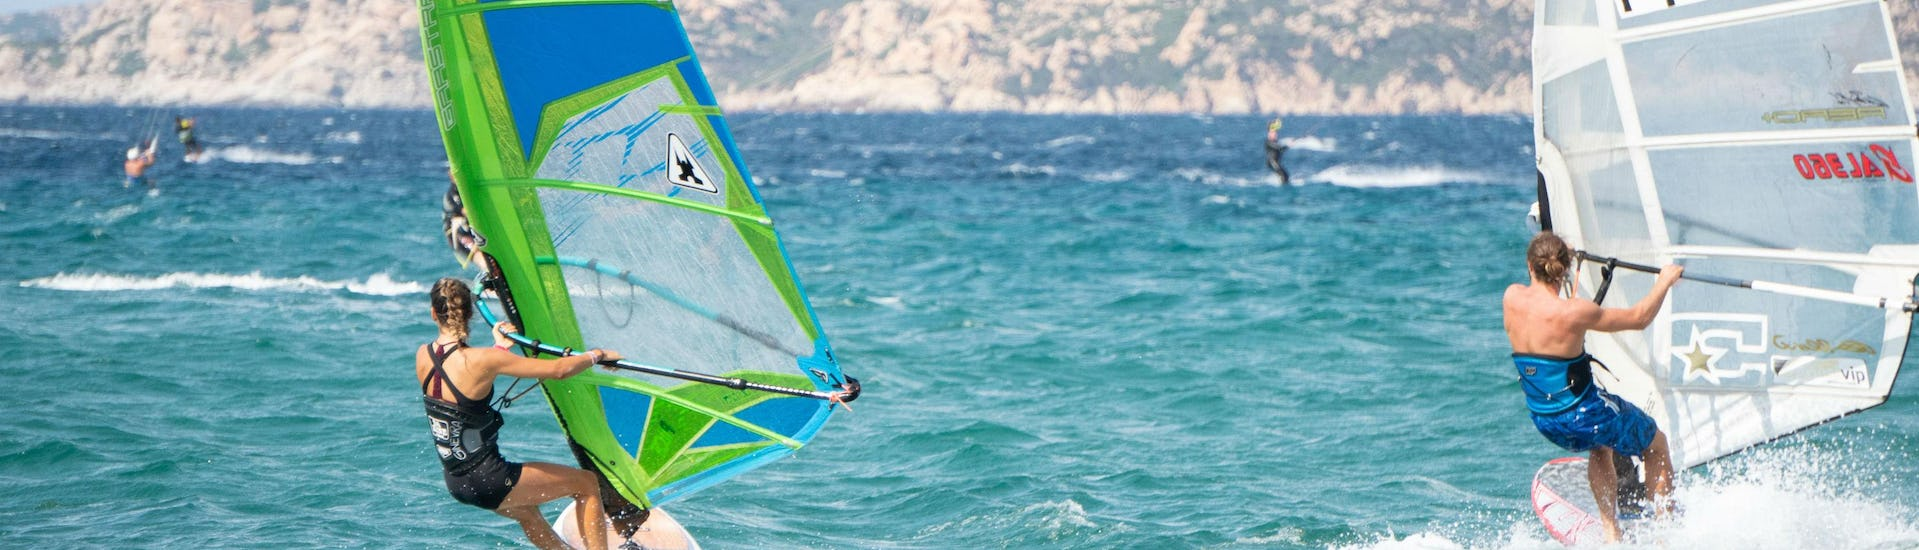 Private Windsurfing Lessons - All Levels